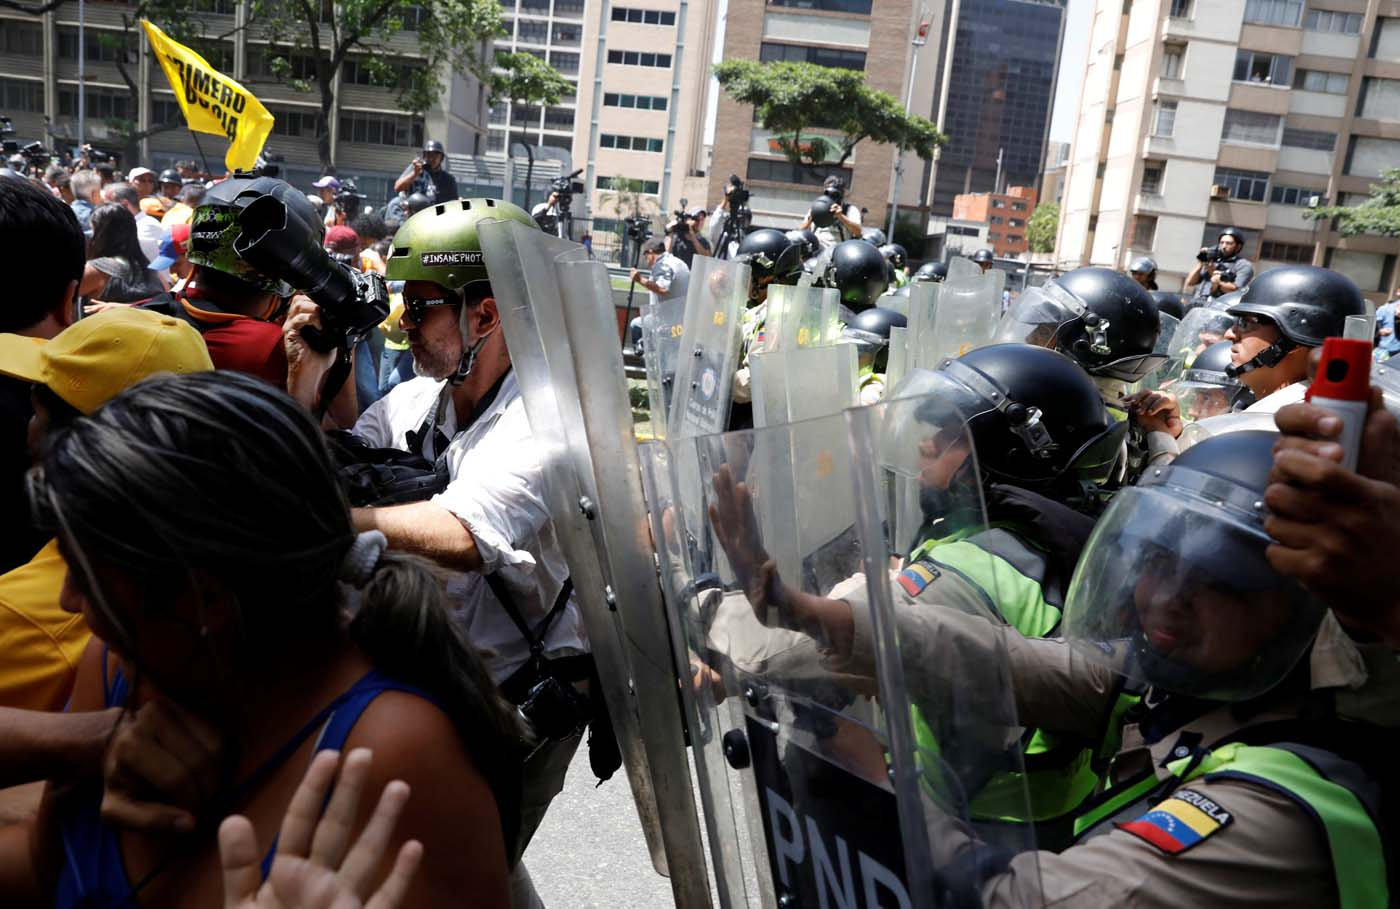 Security forces block demonstrators using riot shields and pepper spray during an opposition rally in Caracas, Venezuela April 4, 2017. REUTERS/Carlos Garcia Rawlins